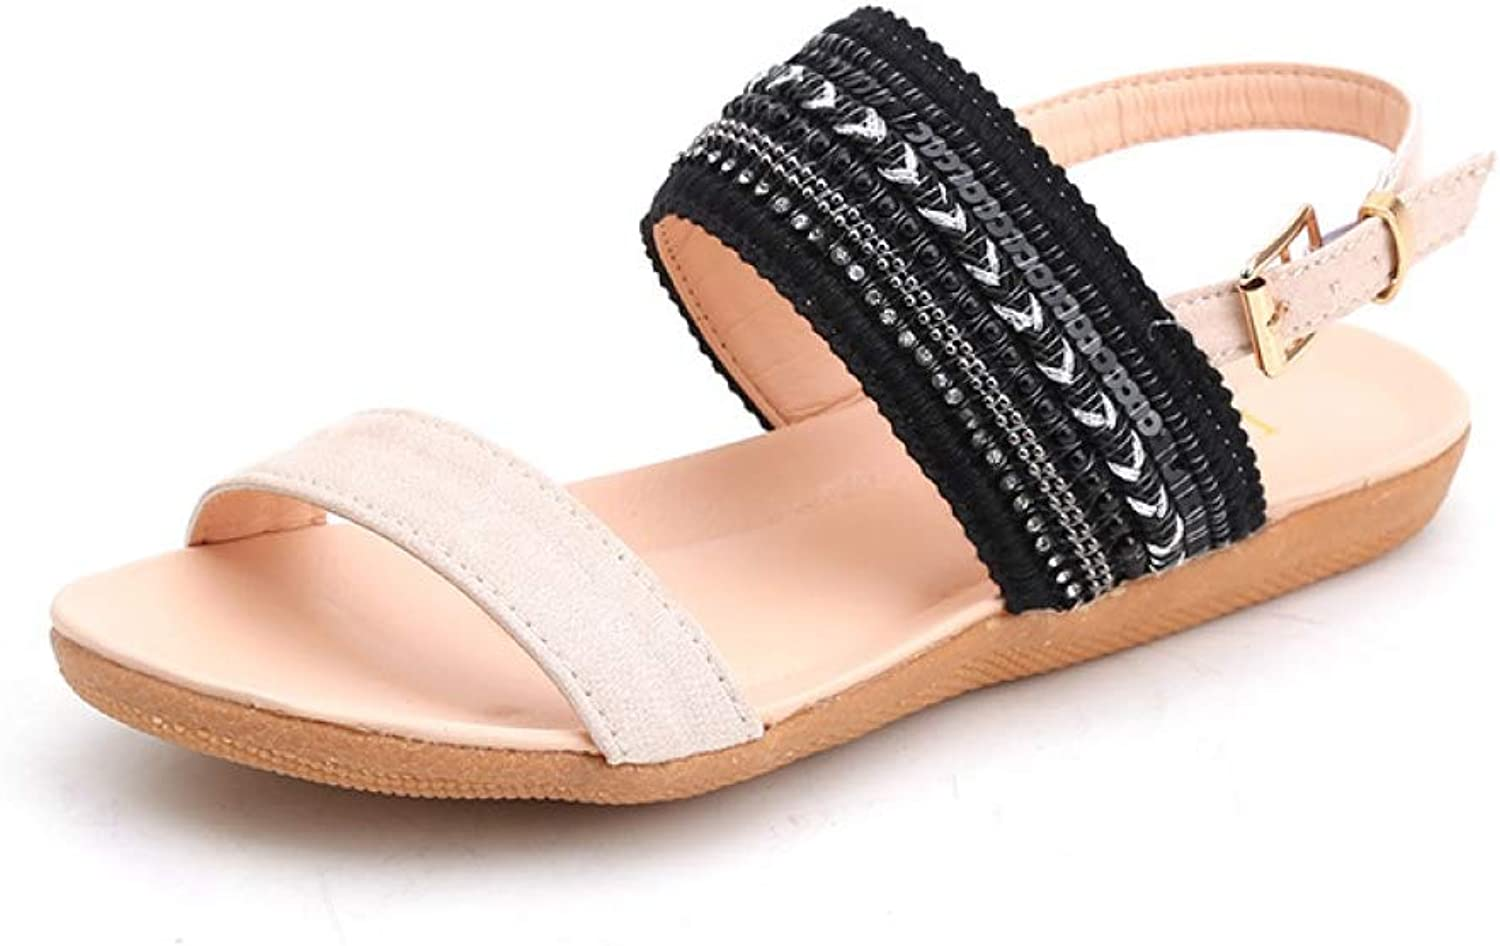 Hoxekle Women Sandals Crystal Summer shoes Slip-On Flats Back Strap Peep Toe shoes Ladies Casual Sandal